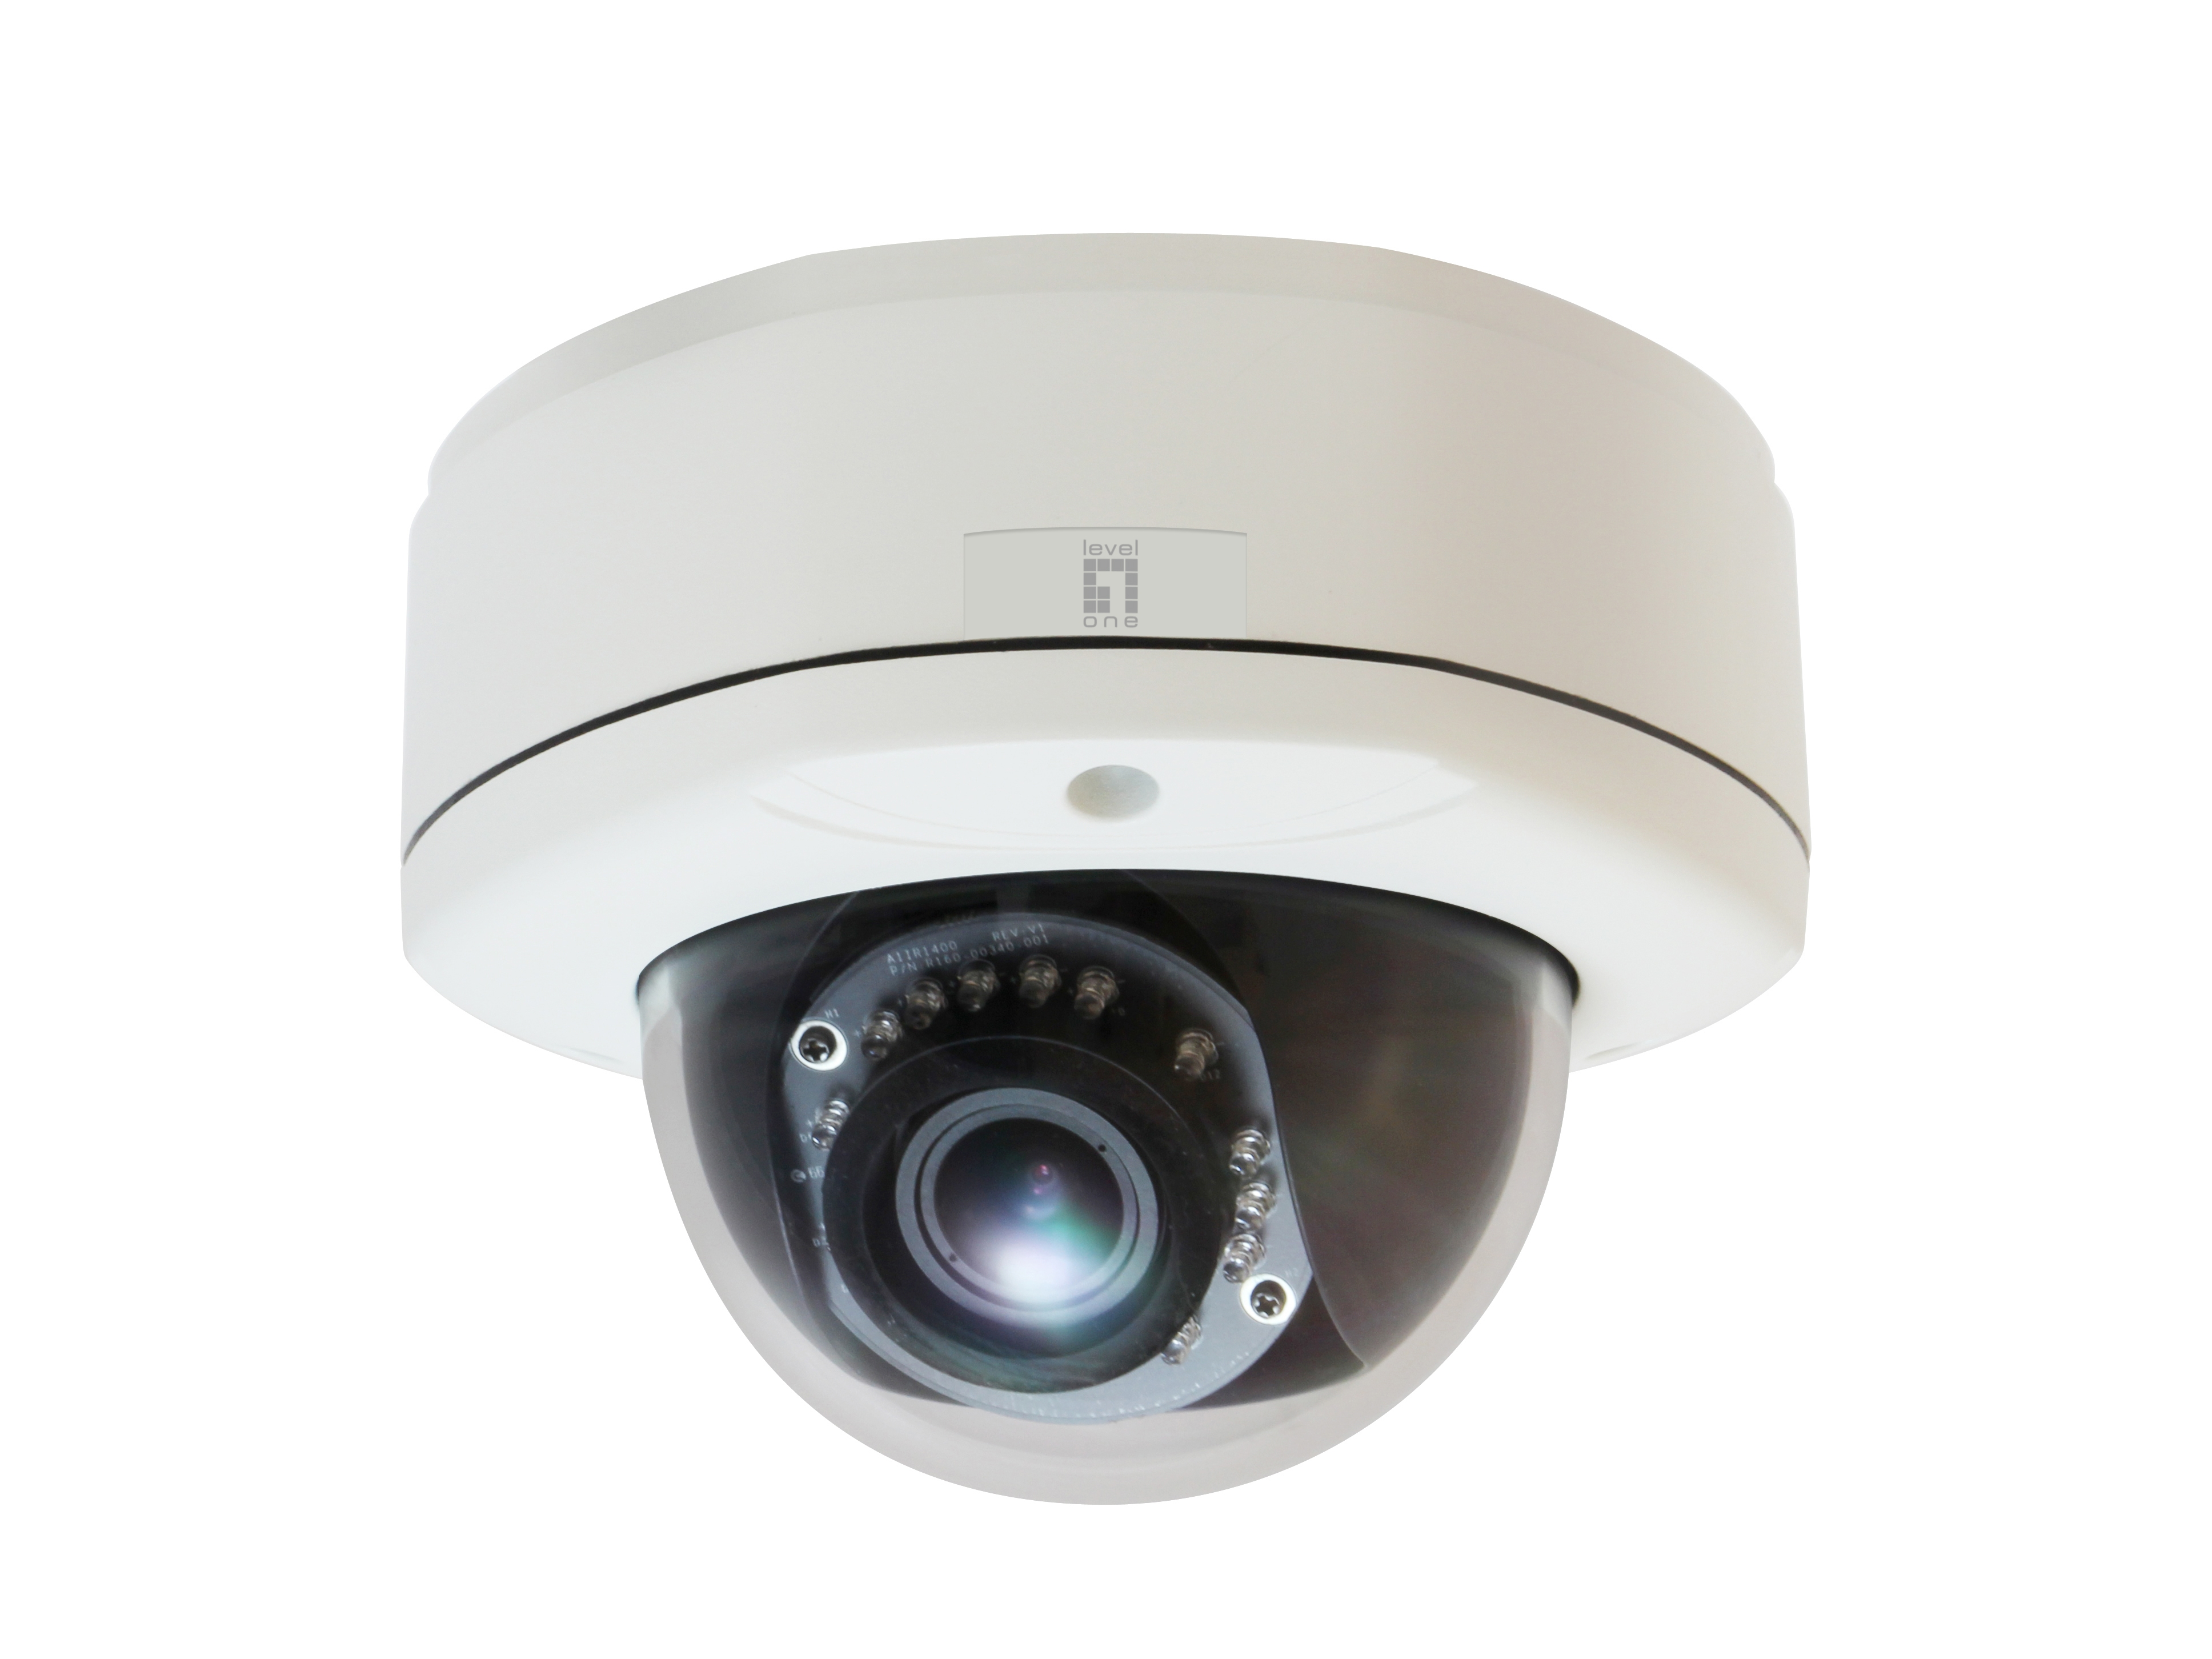 LEVEL ONE FCS-3055 Fixed Dome Network Camera 3 Megapixel Outdoor PoE 802.3af Day and Night IR LEDs WDR